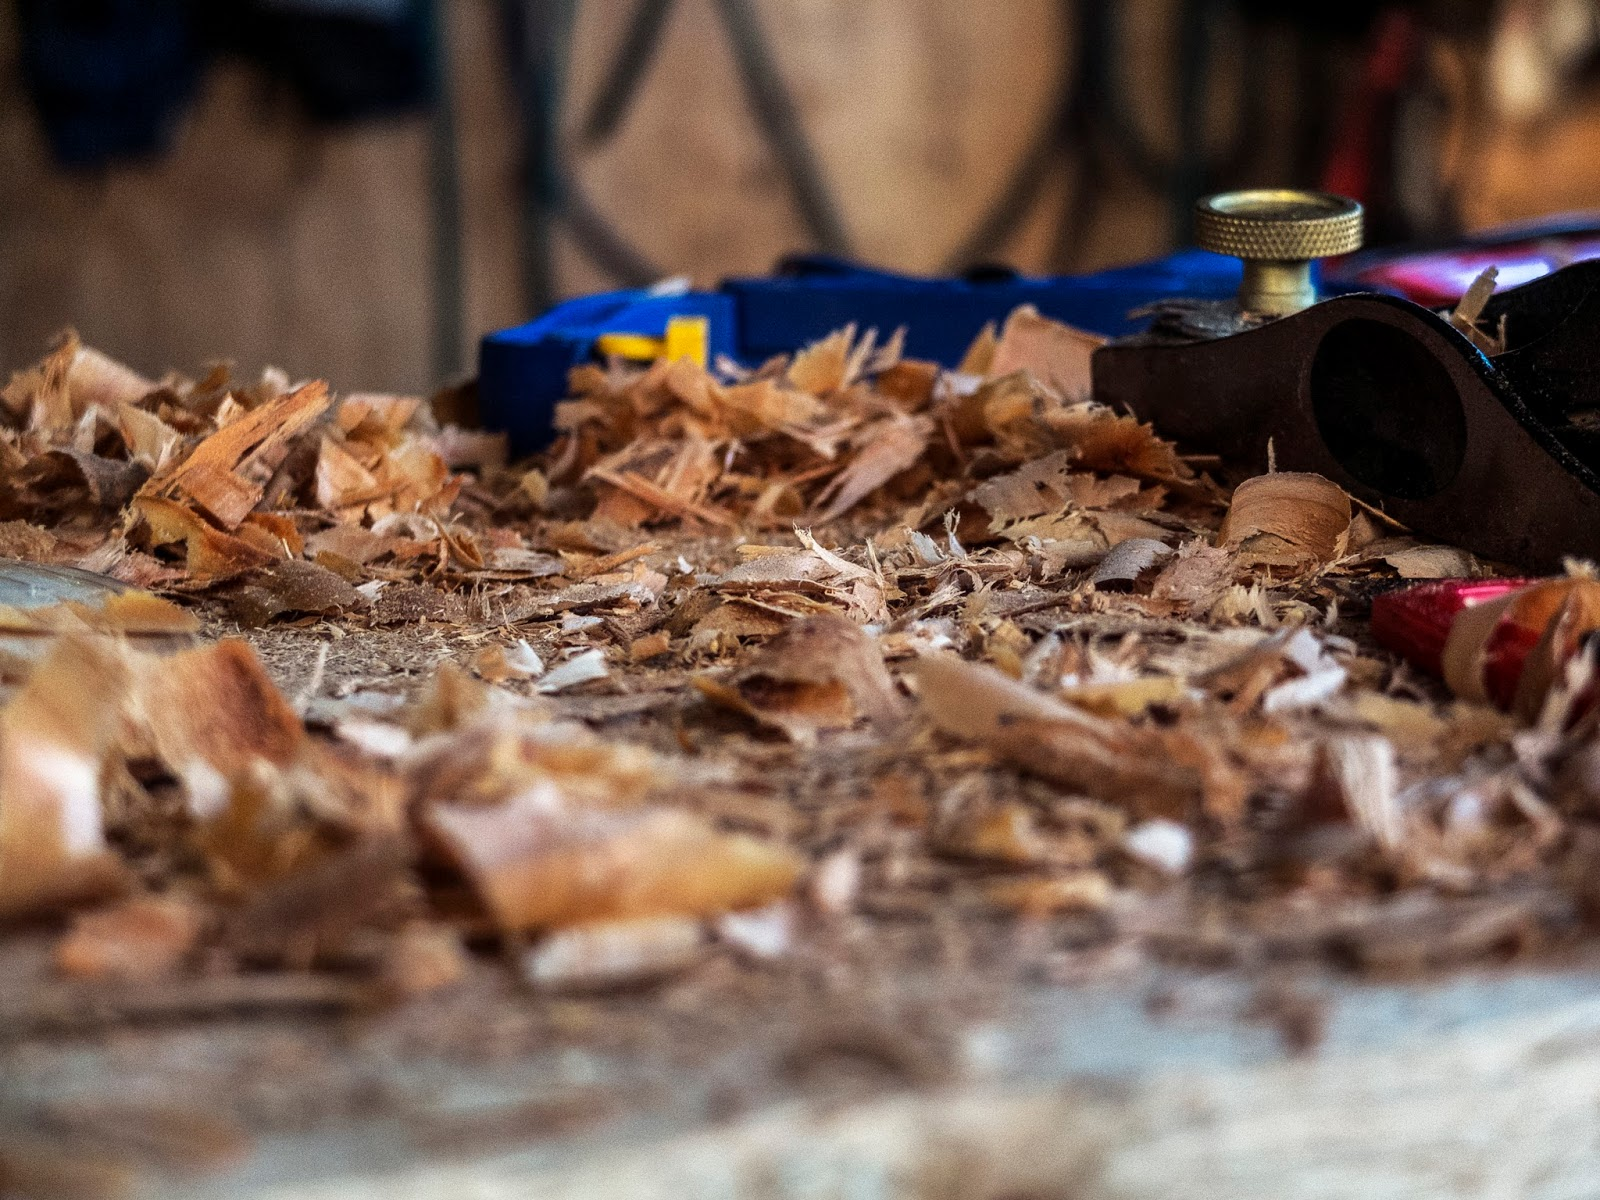 View of a woodworking bench with shavings and a wood plane.